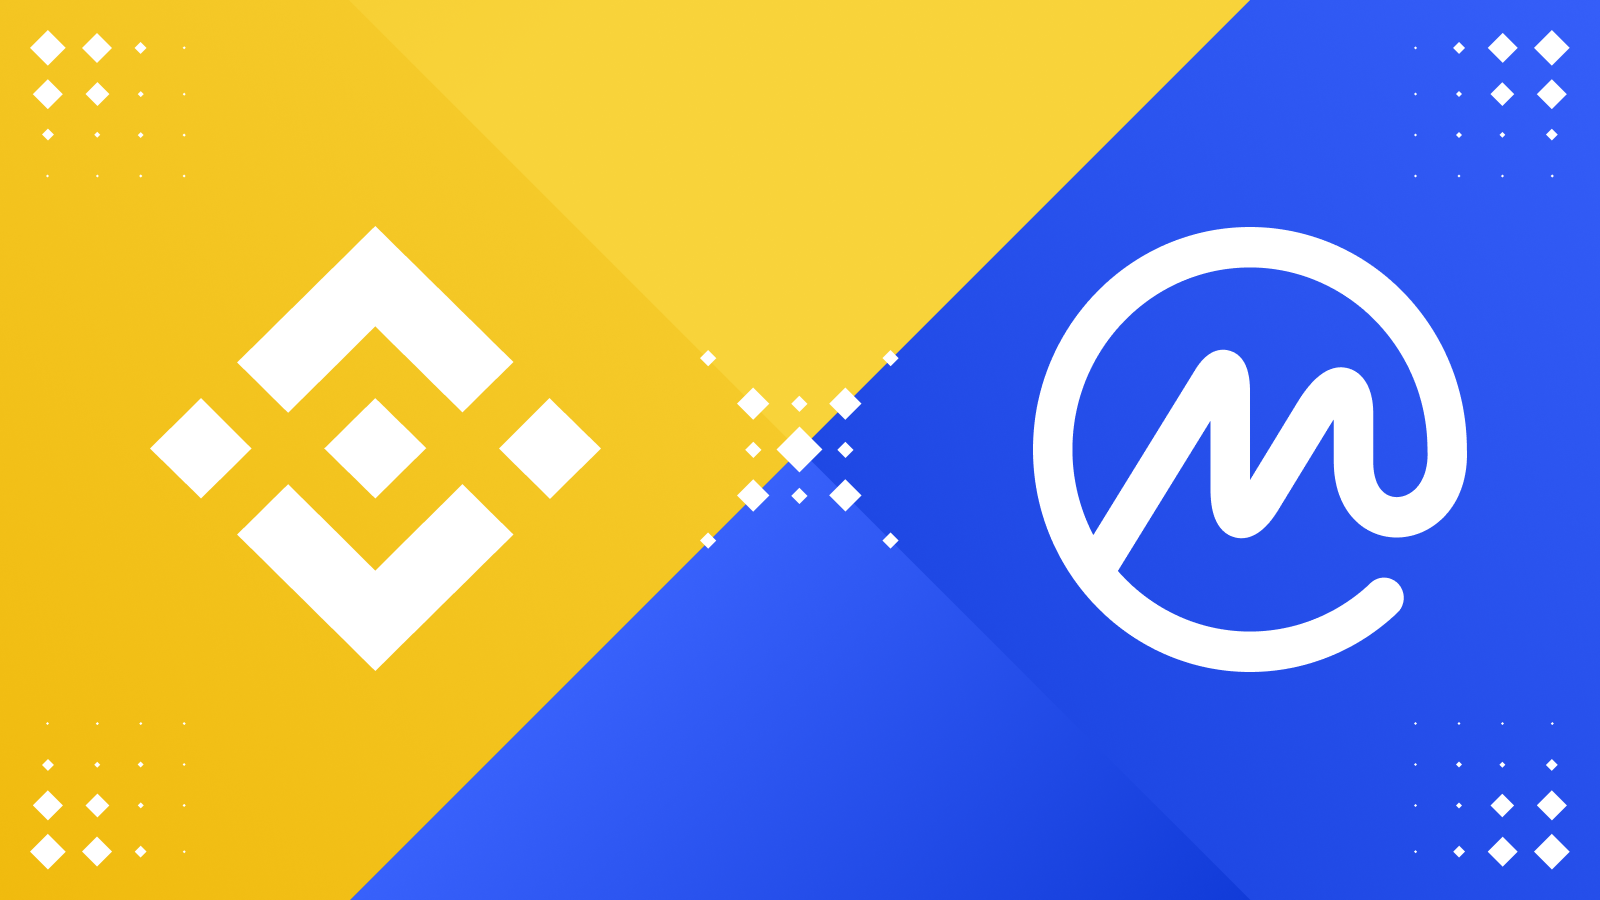 Binance acquires CoinMarketCap for an estimated $300-400 million